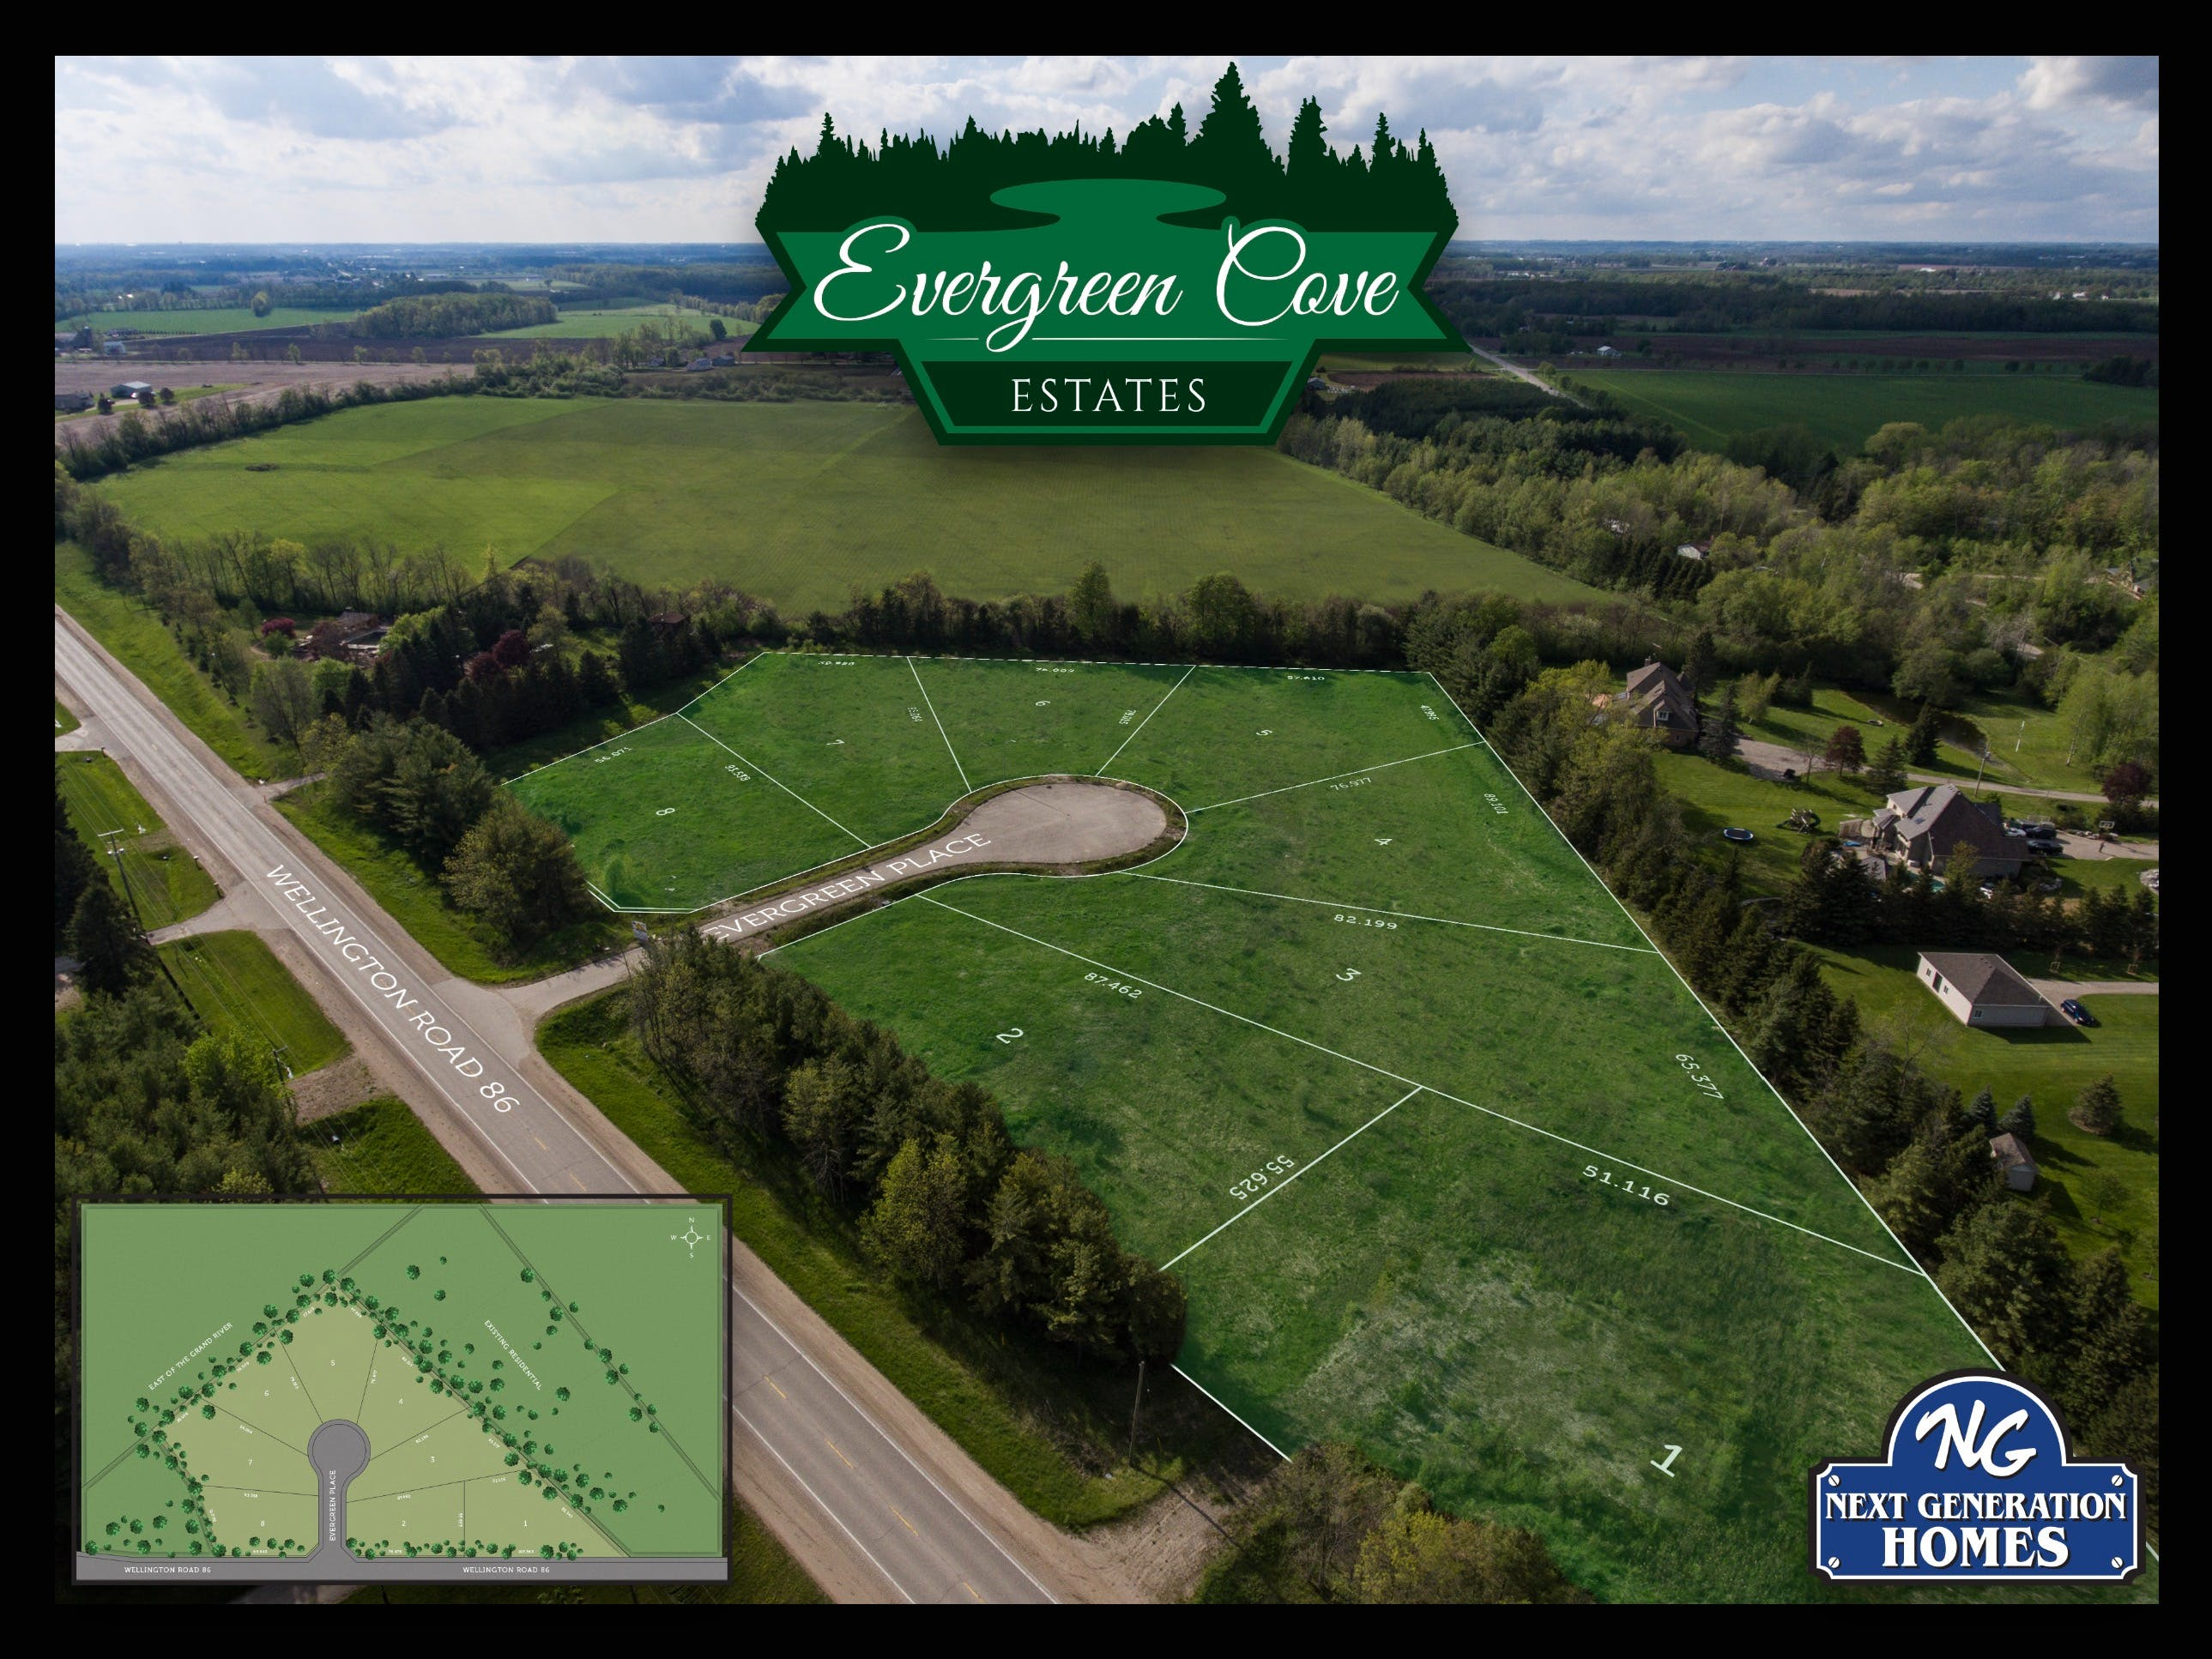 Evergreen Site Map Overlay